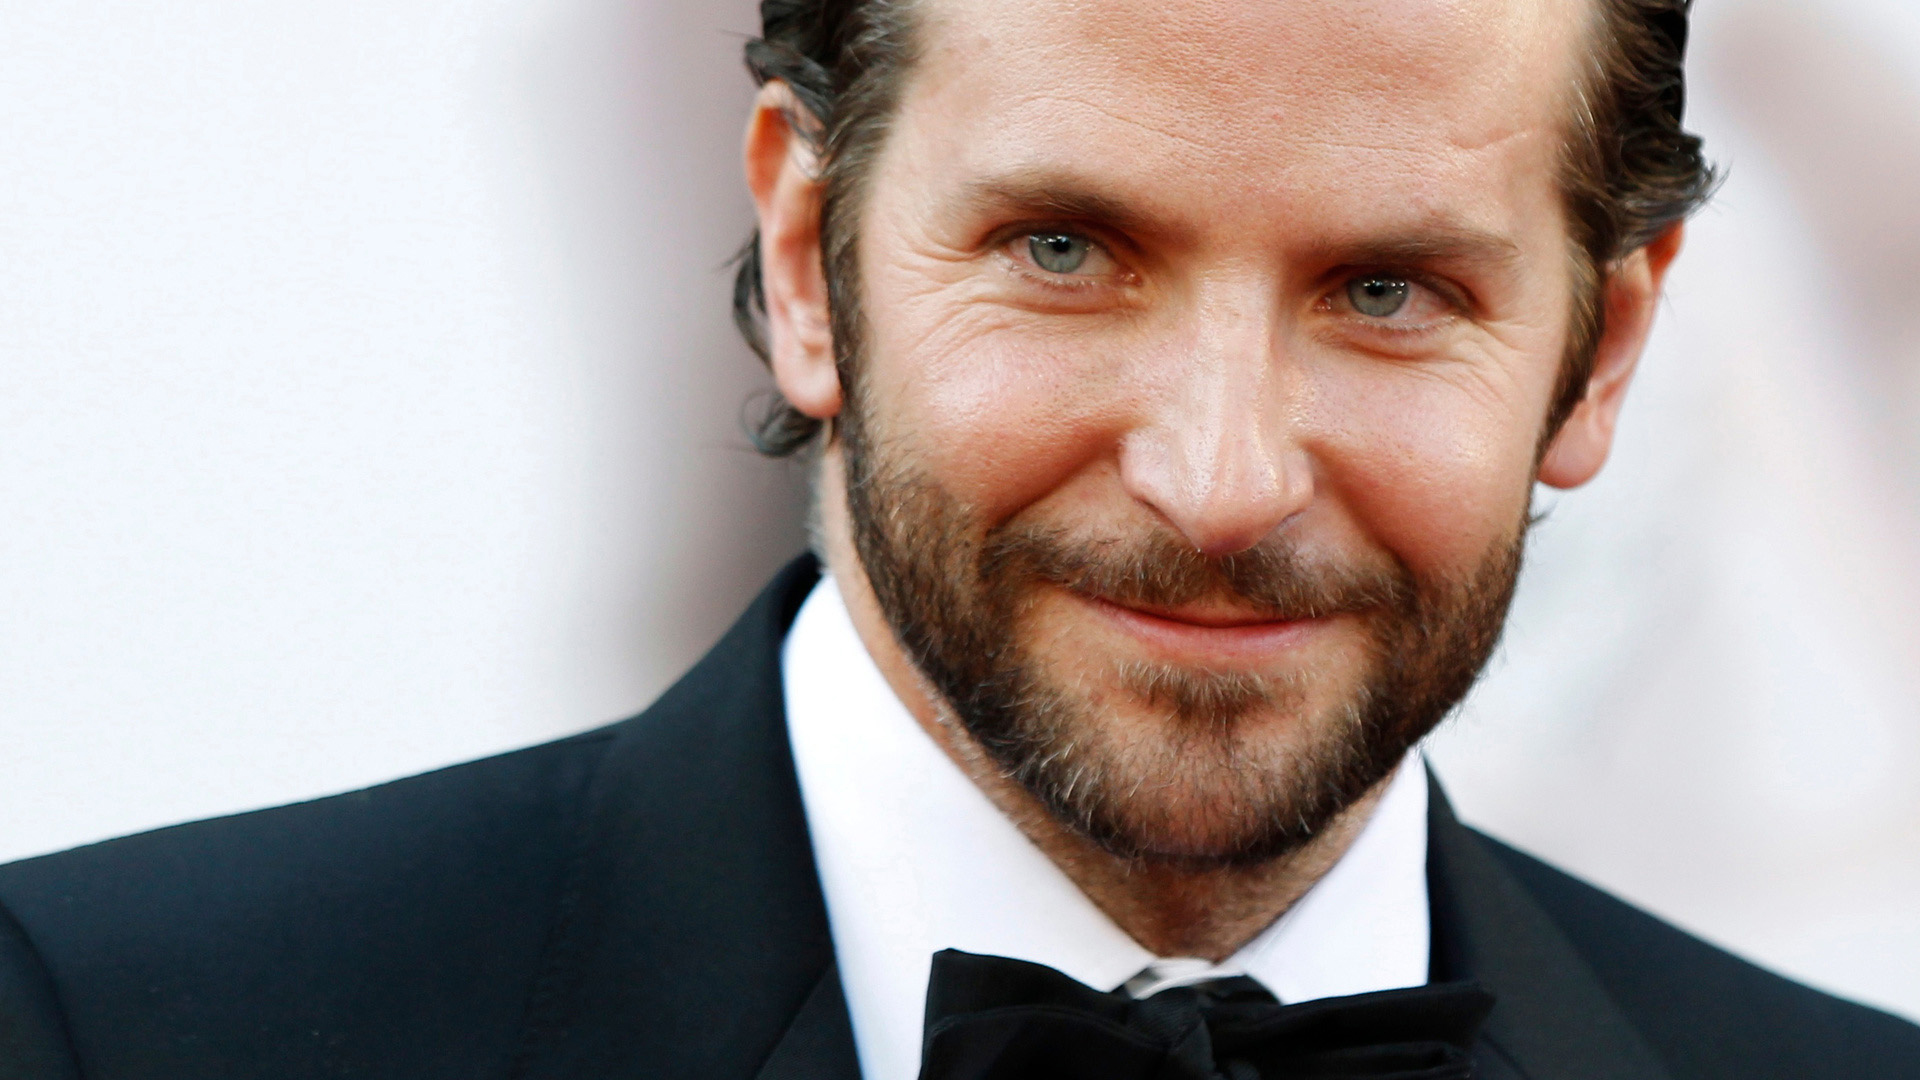 HD Bradley Cooper Wallpapers HdCoolWallpapersCom 1920x1080